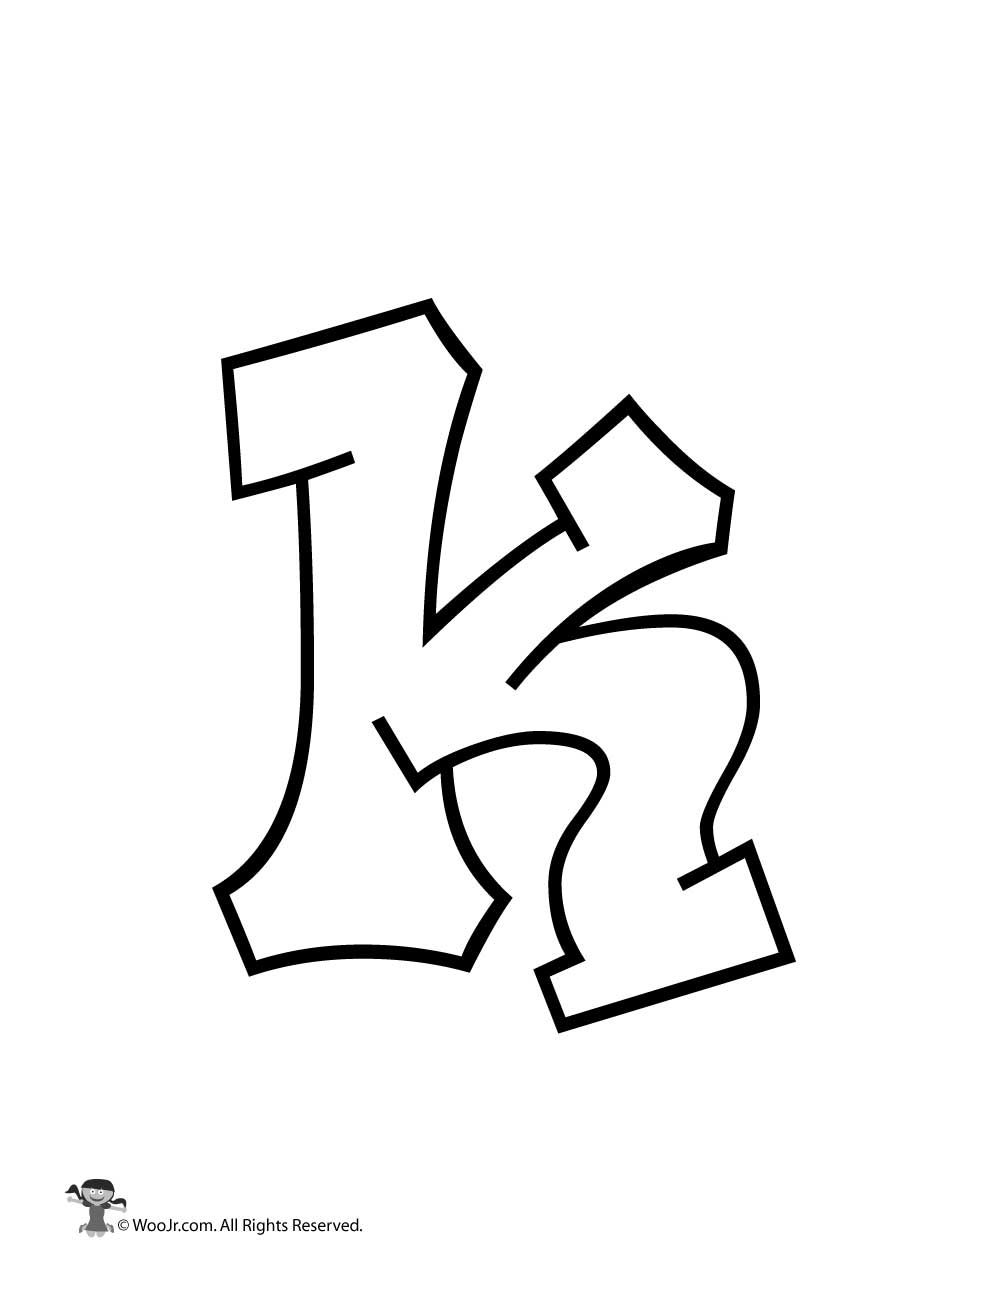 Graffiti Uppercase Lowercase Letters Www Topsimages Com